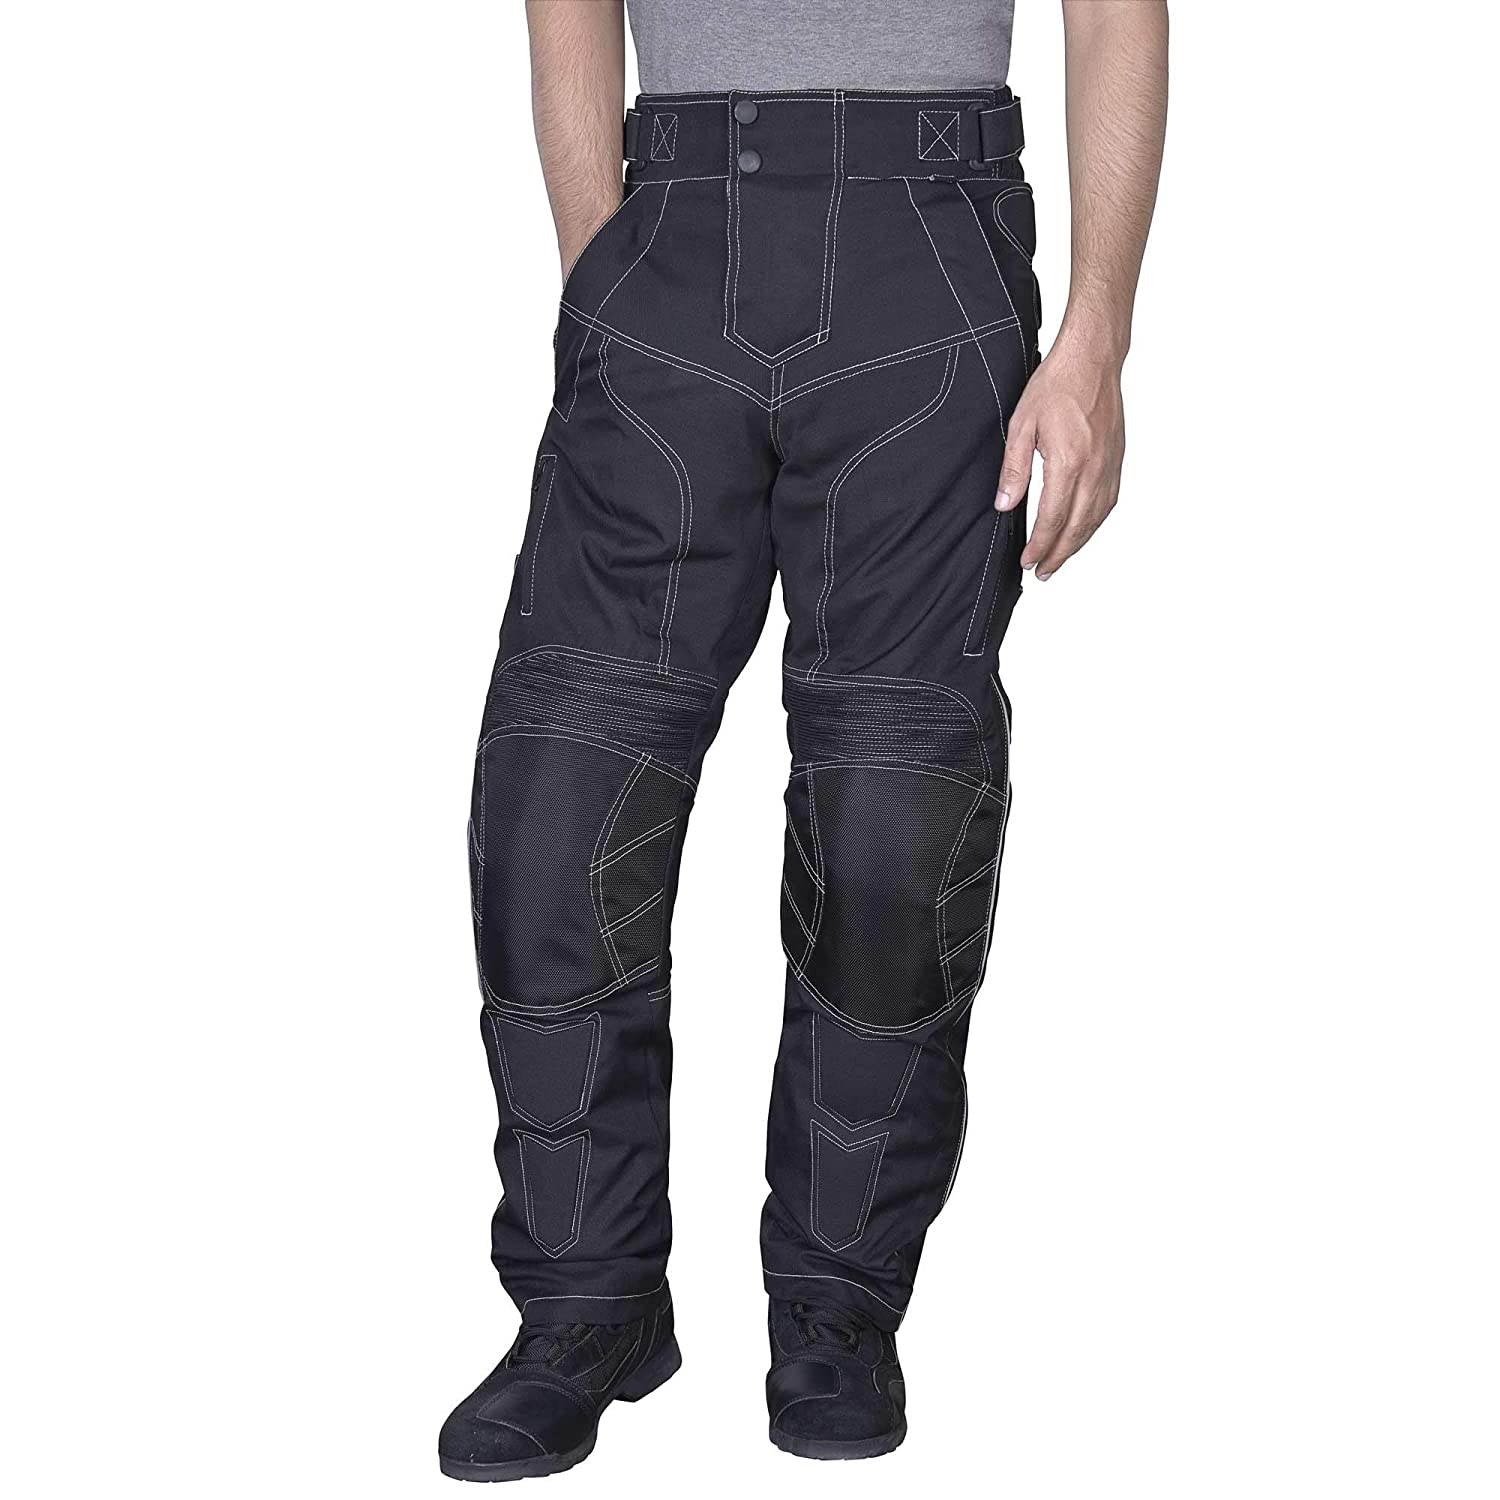 Men Motorcycle Riding Pants WaterProof WindProof Black with Removable CE Armor PT5 (2XL-Short) Xtreemgear